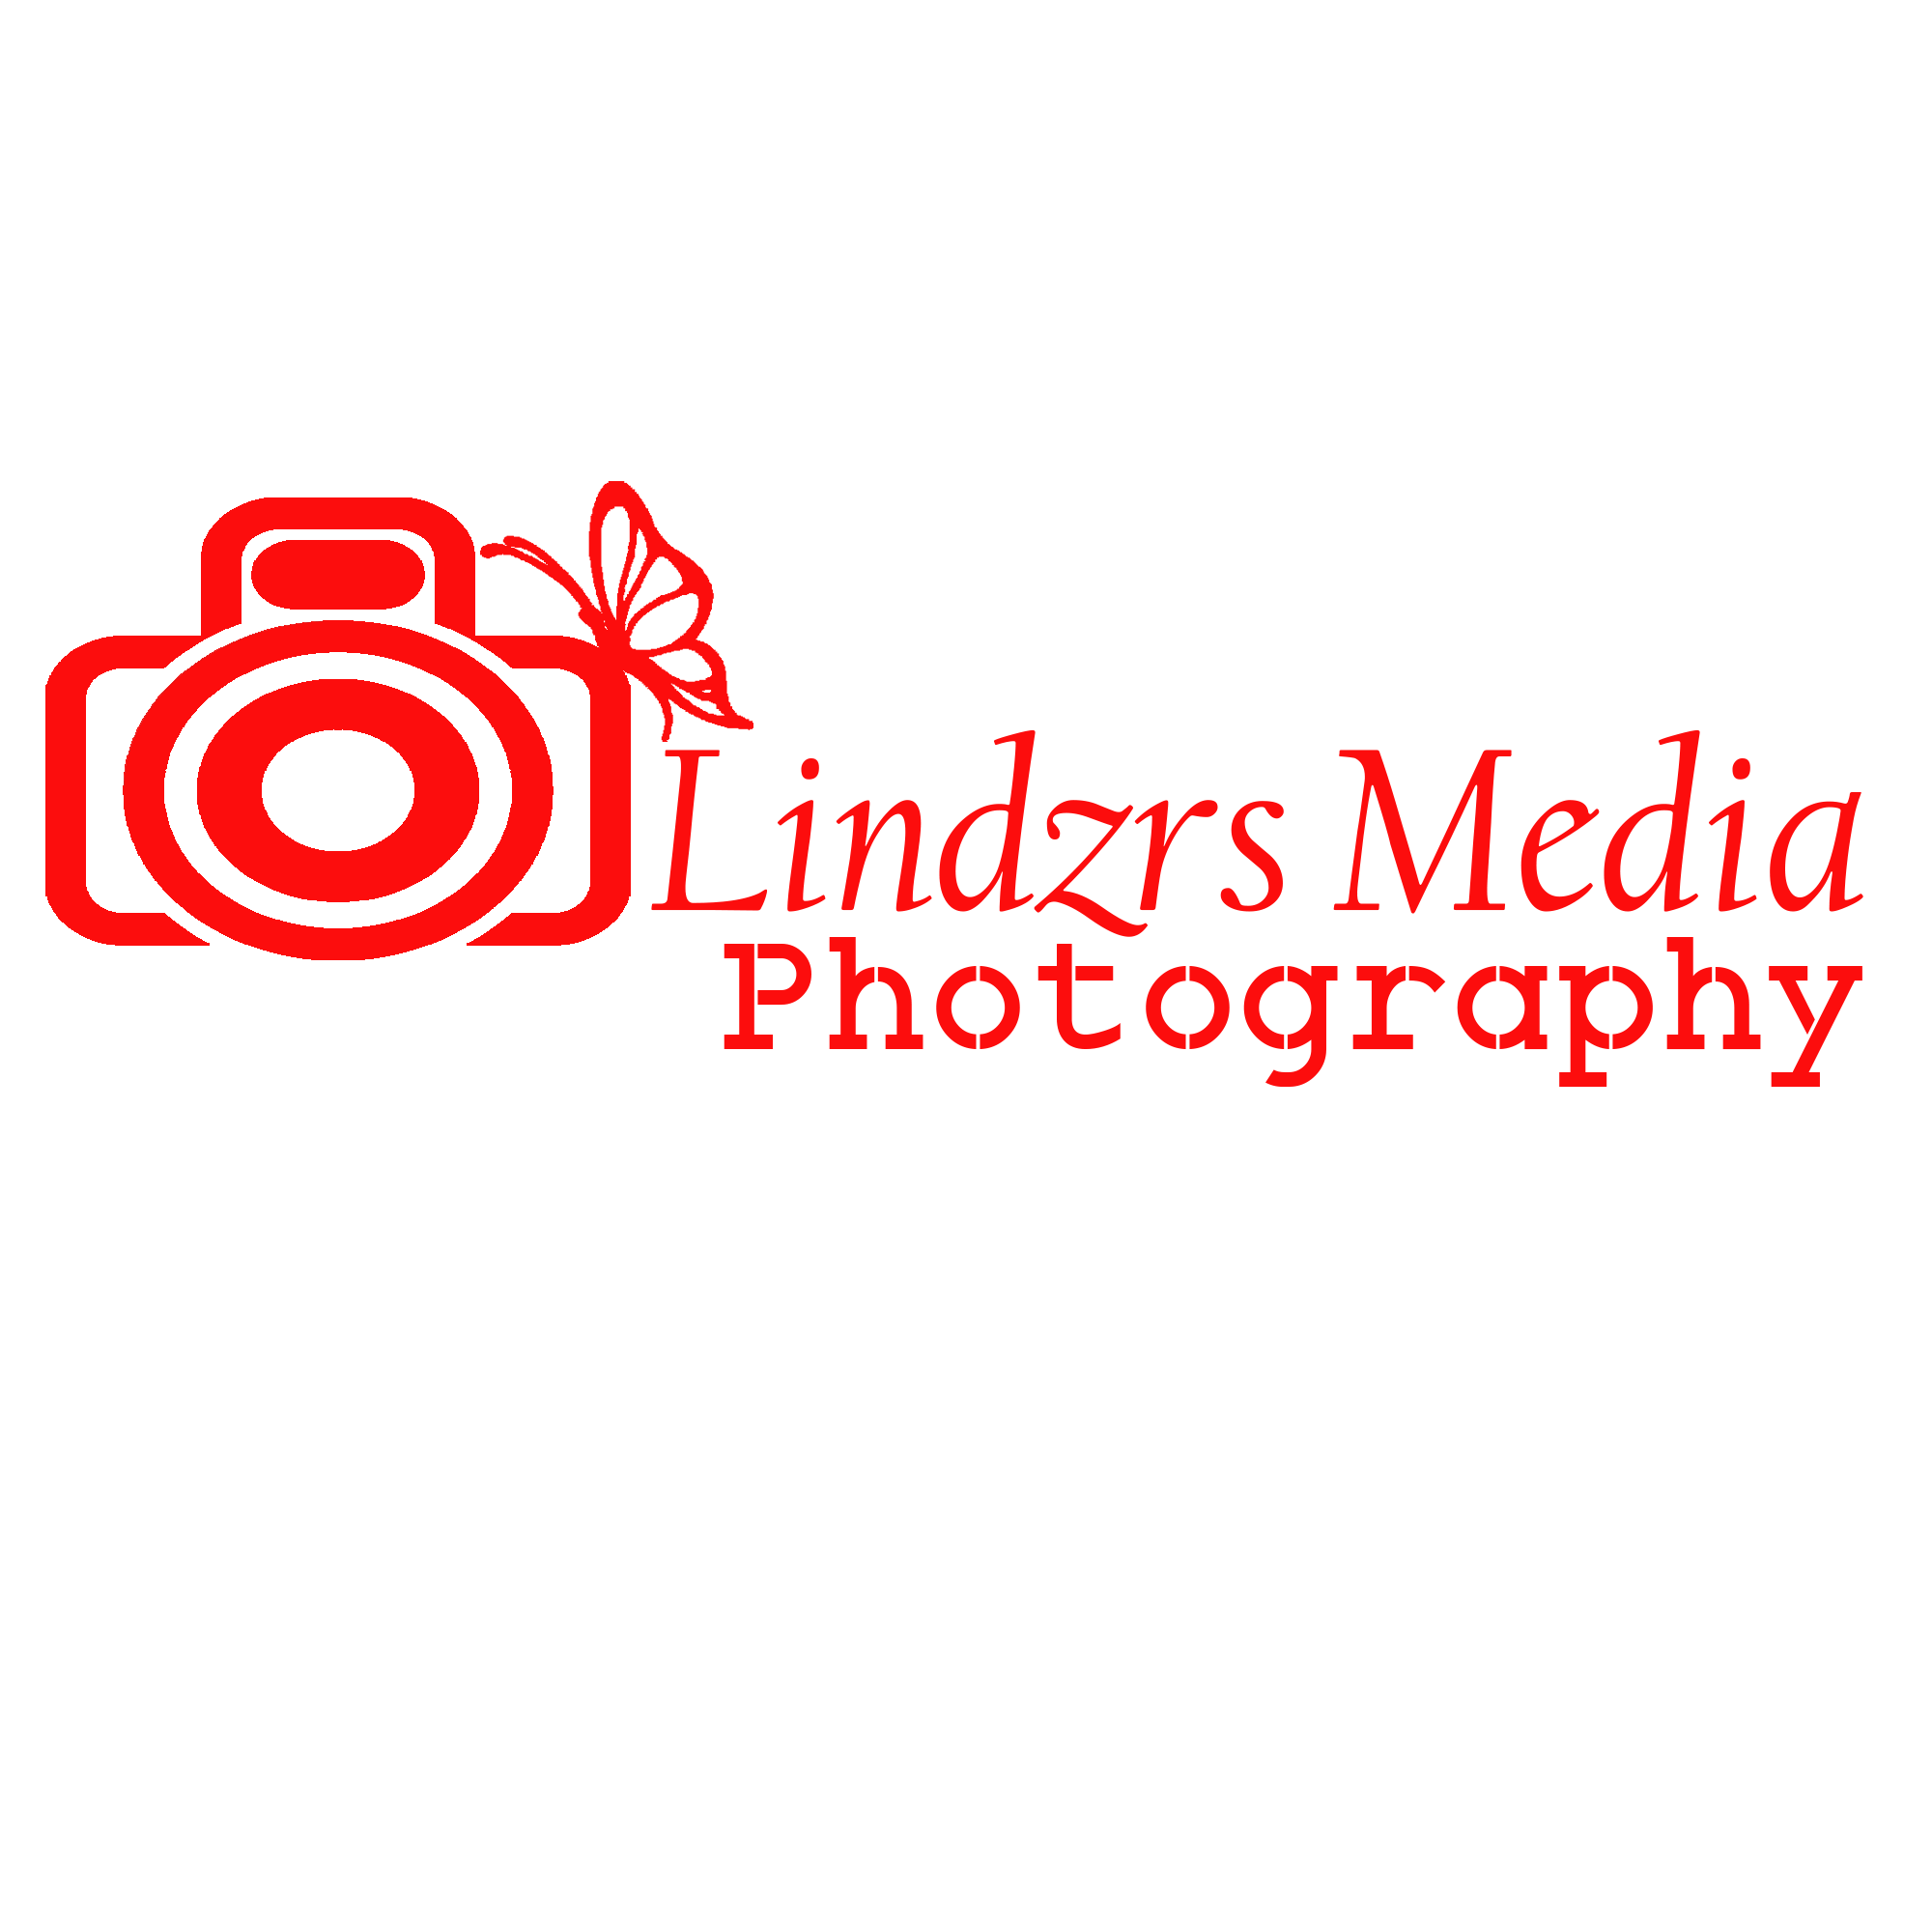 An award winning freelance photographer specialising in concert & event photography, combining her photographers creativity with an absolute love of live music. Photo credits include many new up and coming bands together with the firmly established. Lindzrs Media Photography form part of the Down The Front Media team.